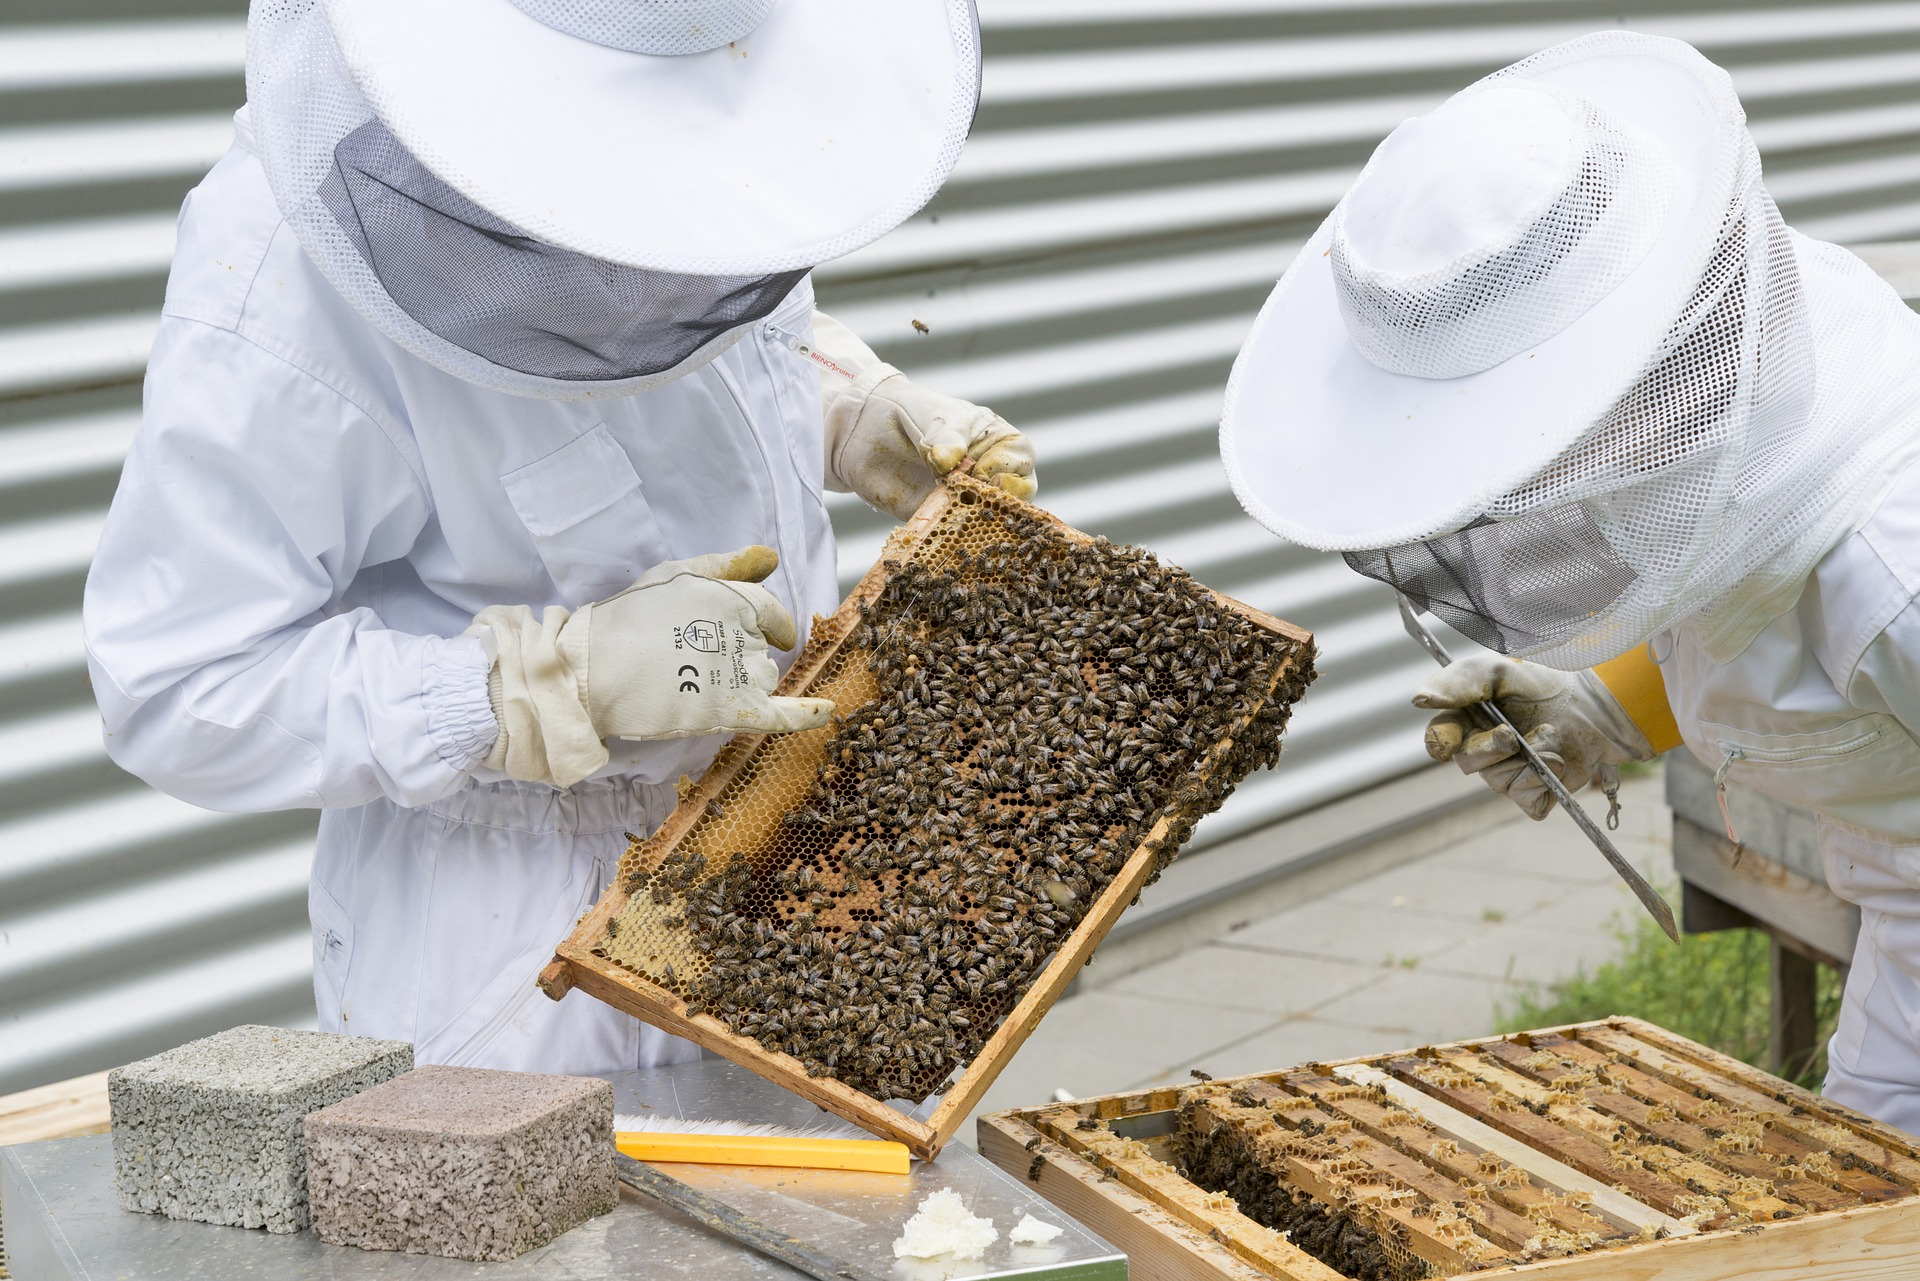 Beekeepers touching honey bees